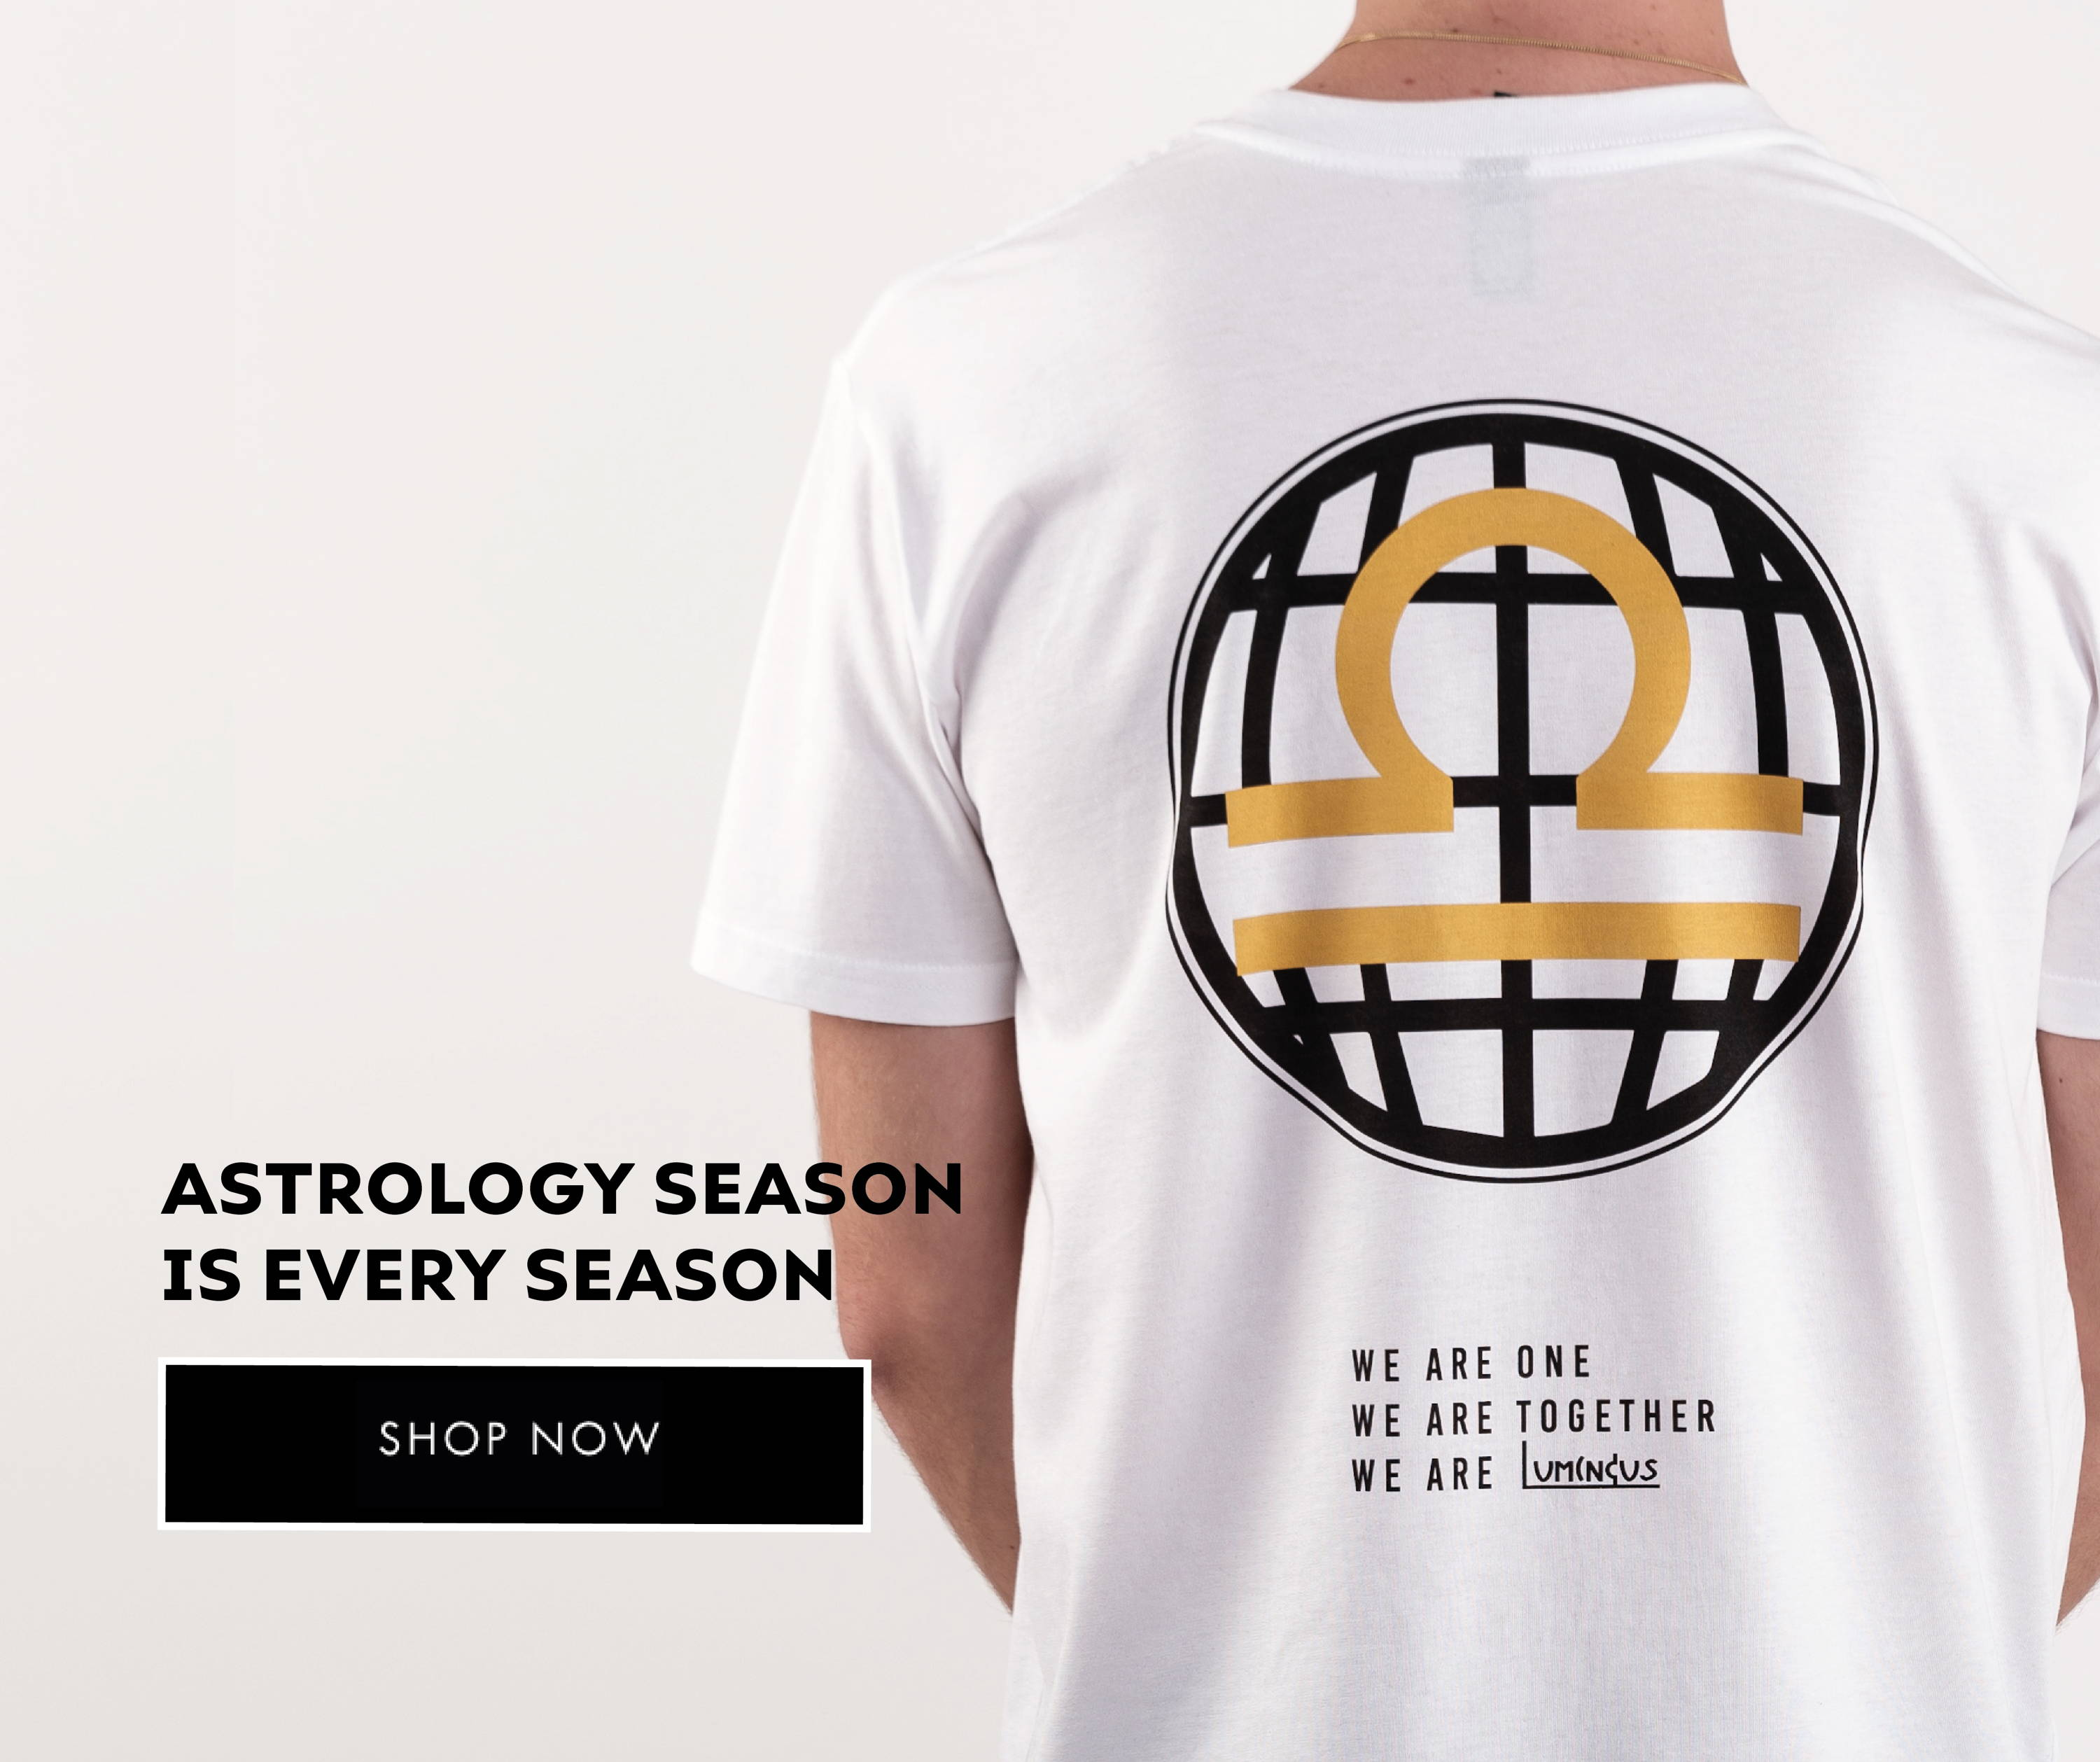 Astrology Collection - Shop Now